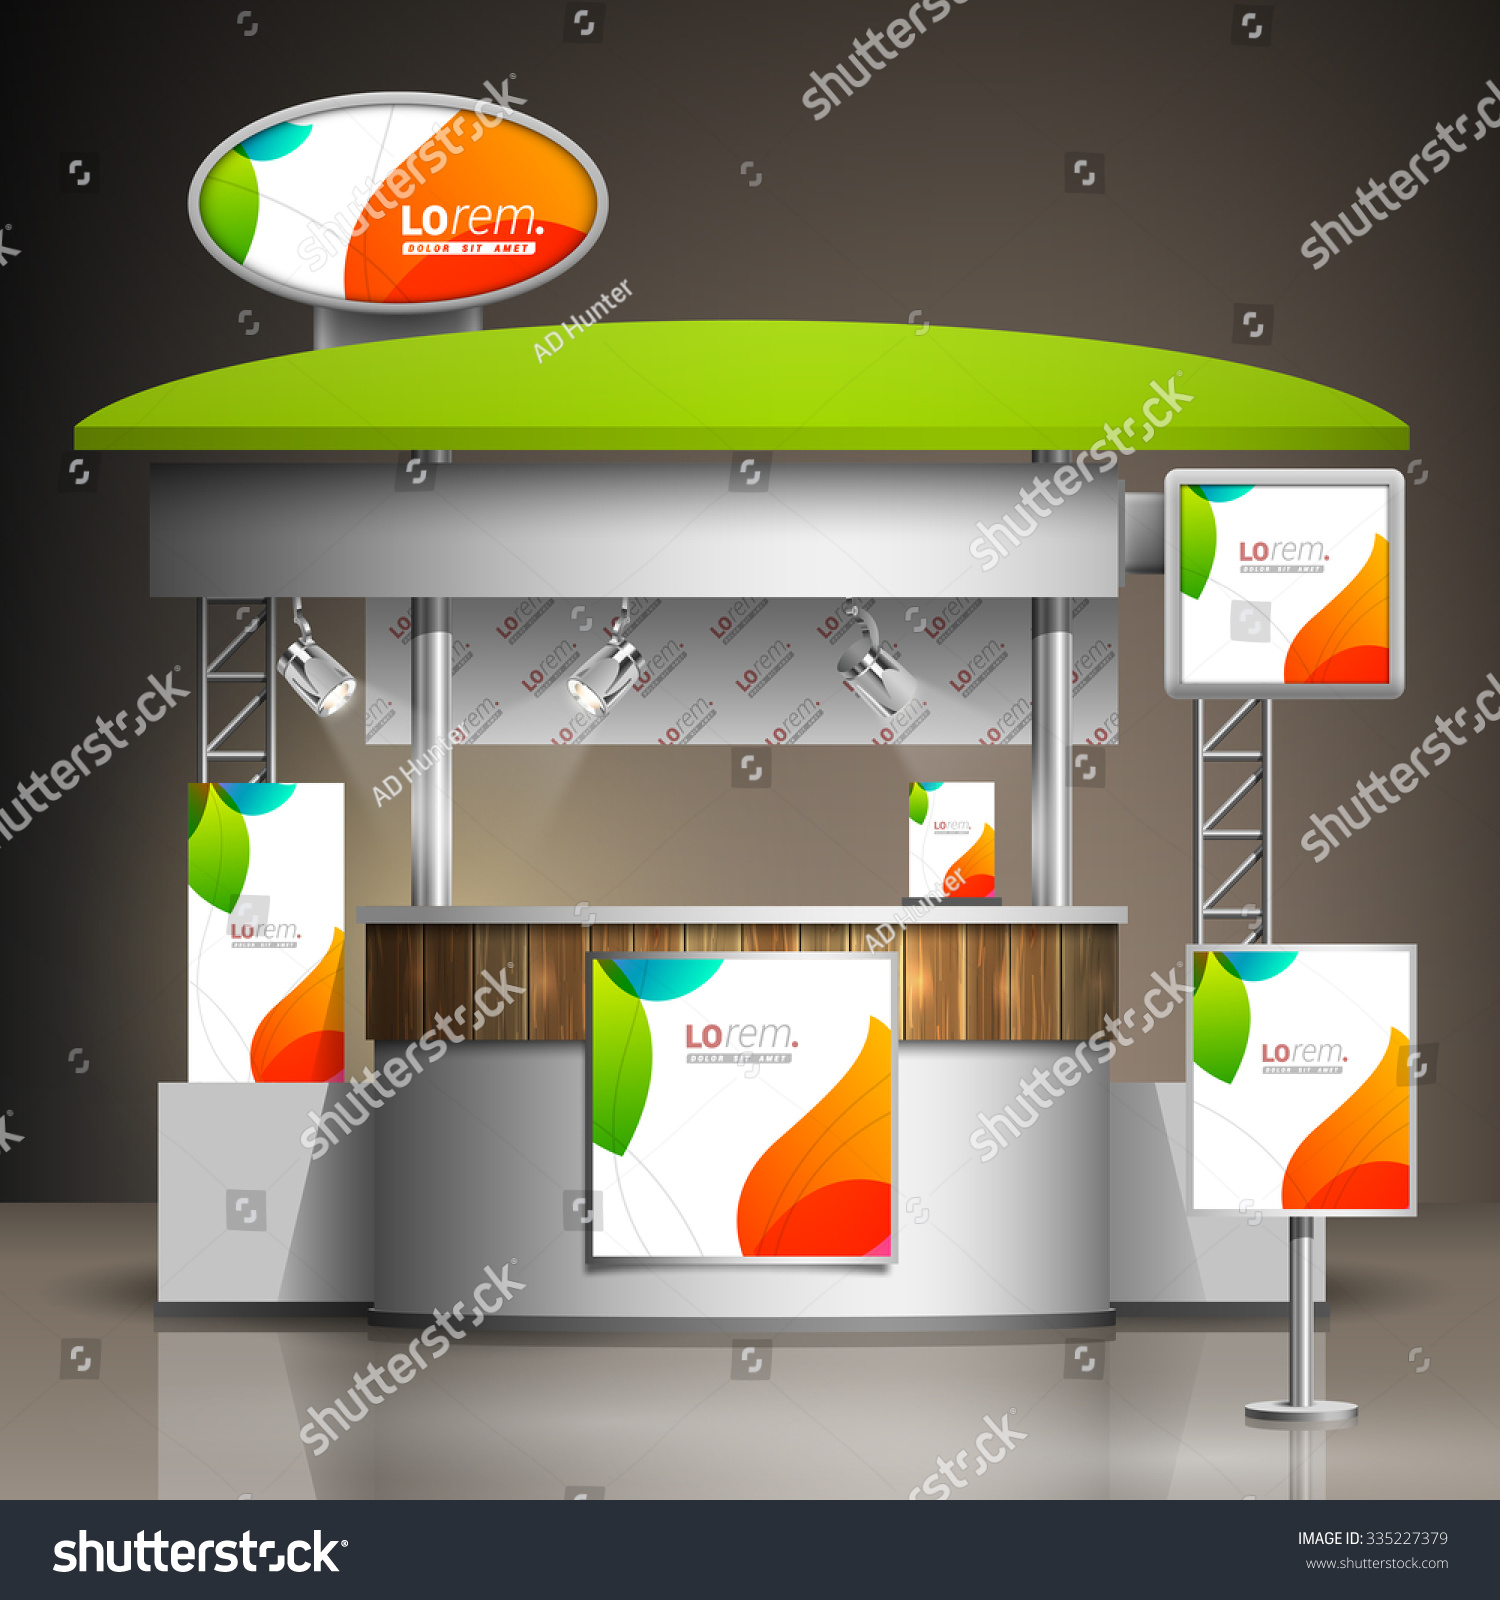 Exhibition Stand Design Vector : White creative exhibition stand design color stock vector